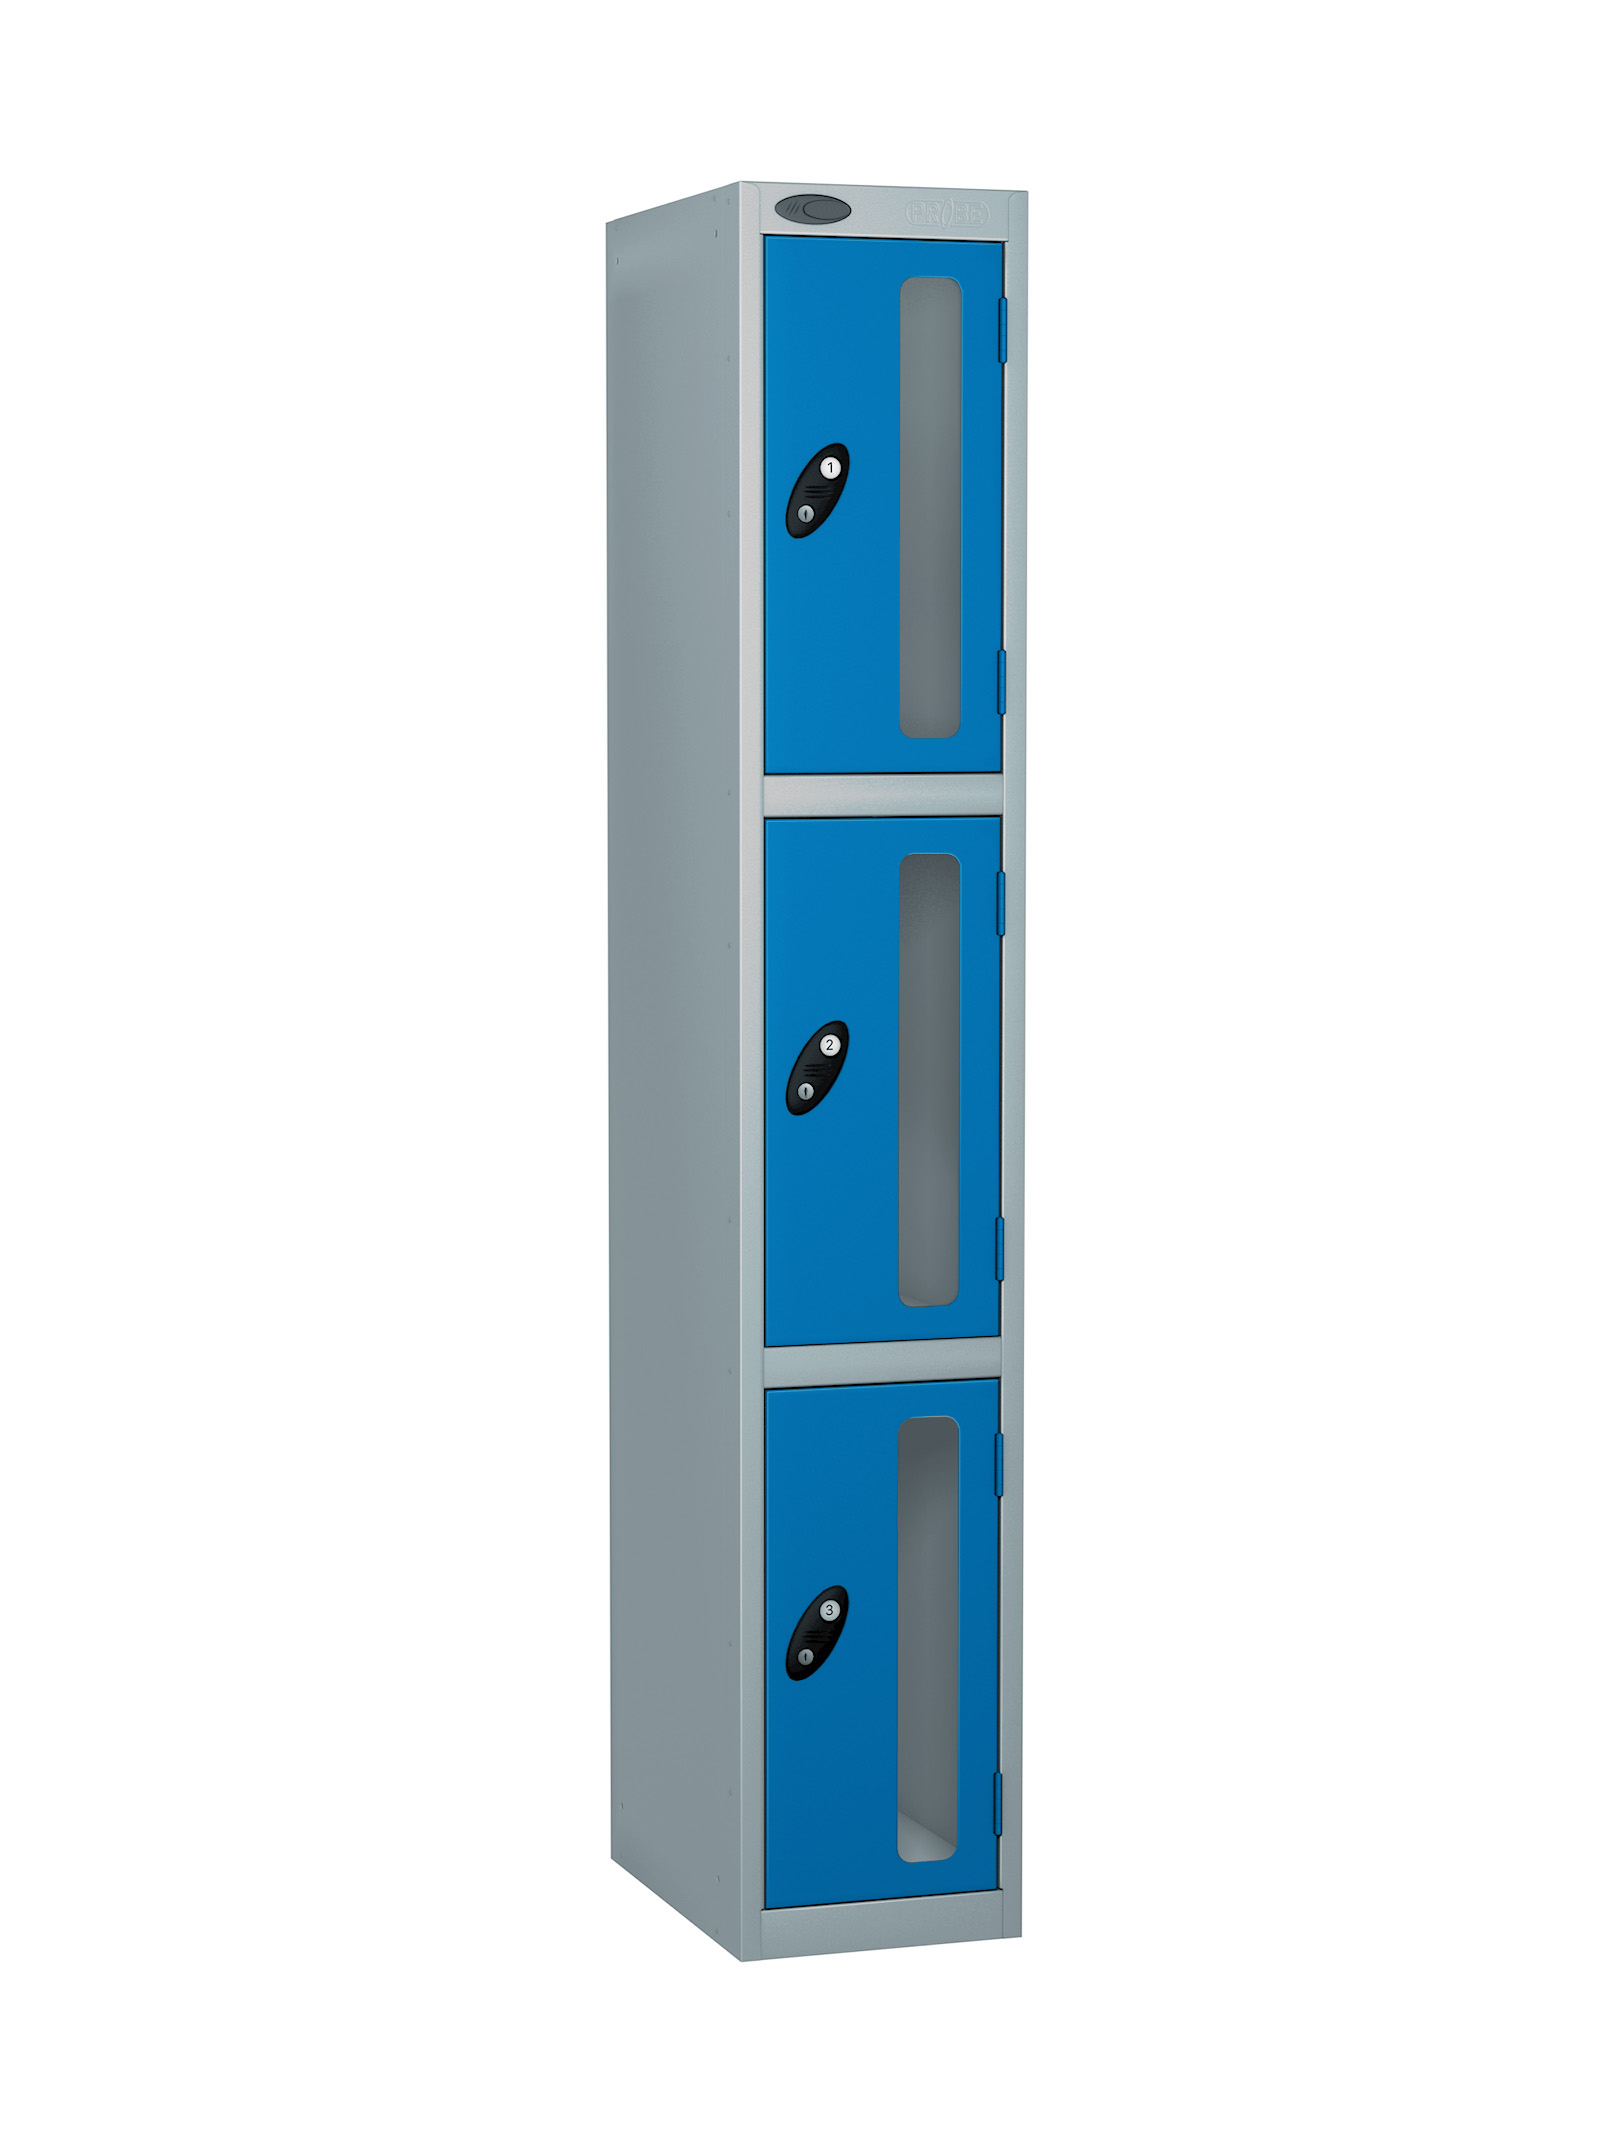 Probe 3 doors vision panel anti-stock theft locker blue